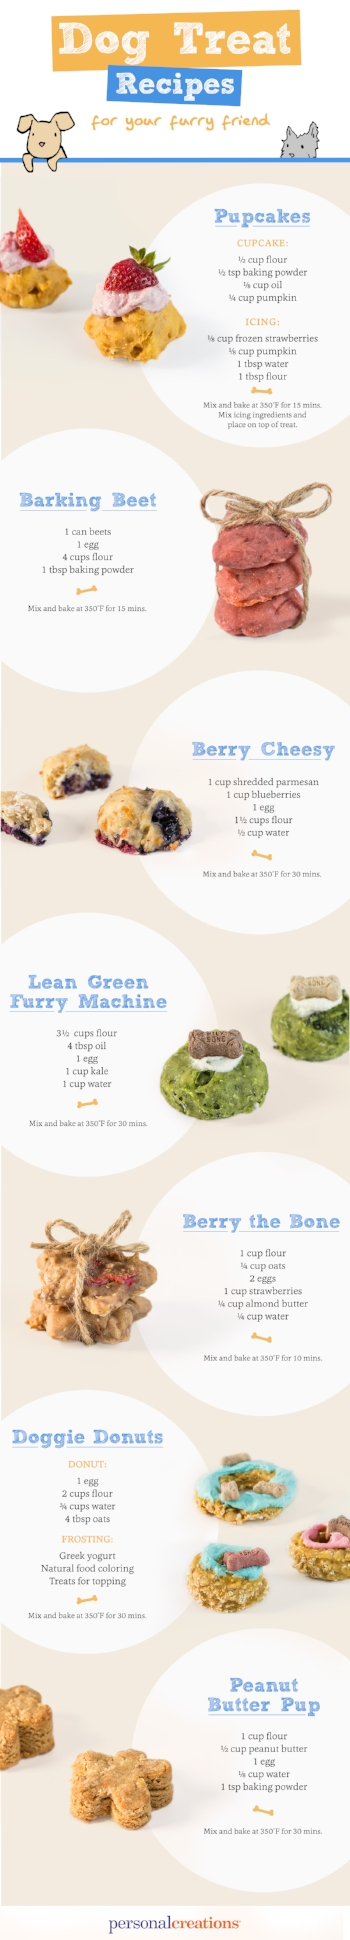 Wags and Walks_Dog Treat Recipes